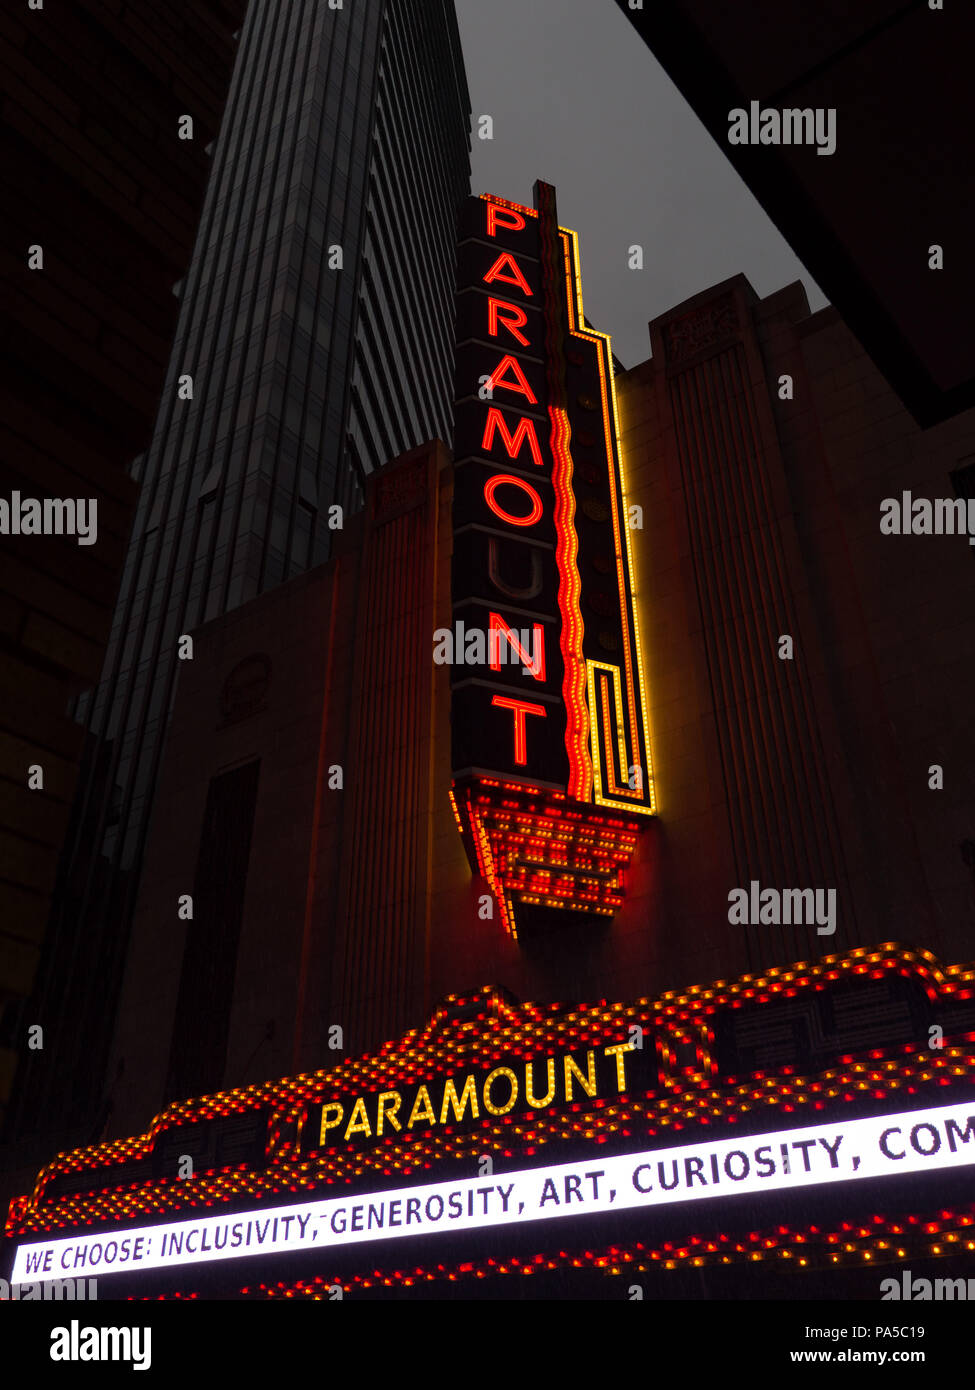 Vertical photo of Old restored Paramount theater sign lit up at night in colorful lights missing the 'U' in Paramount. - Stock Image